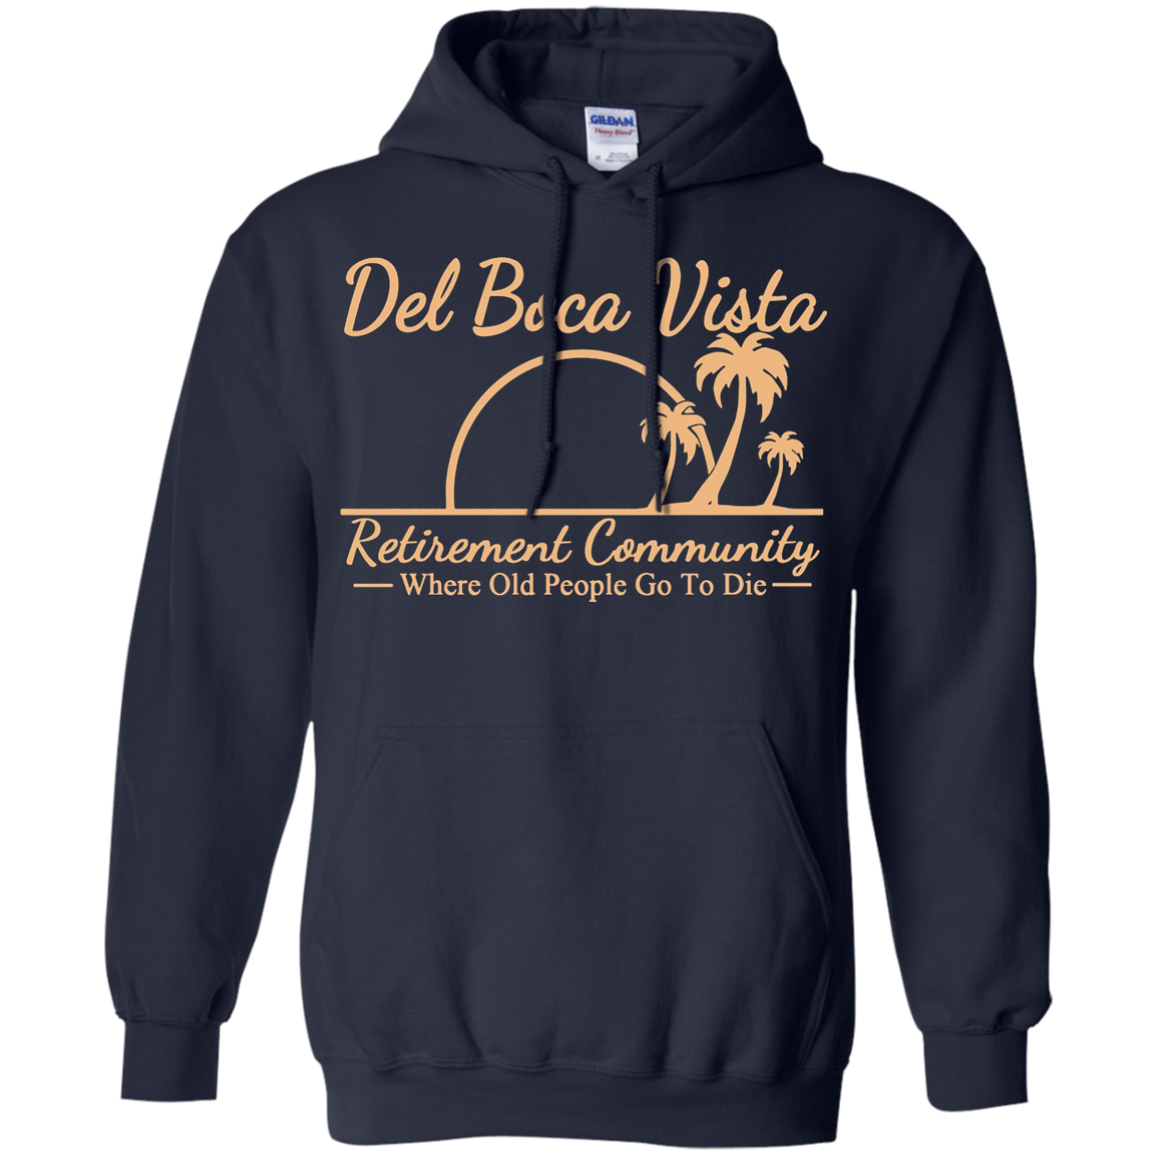 Del Boca Vista - Where old people go to die